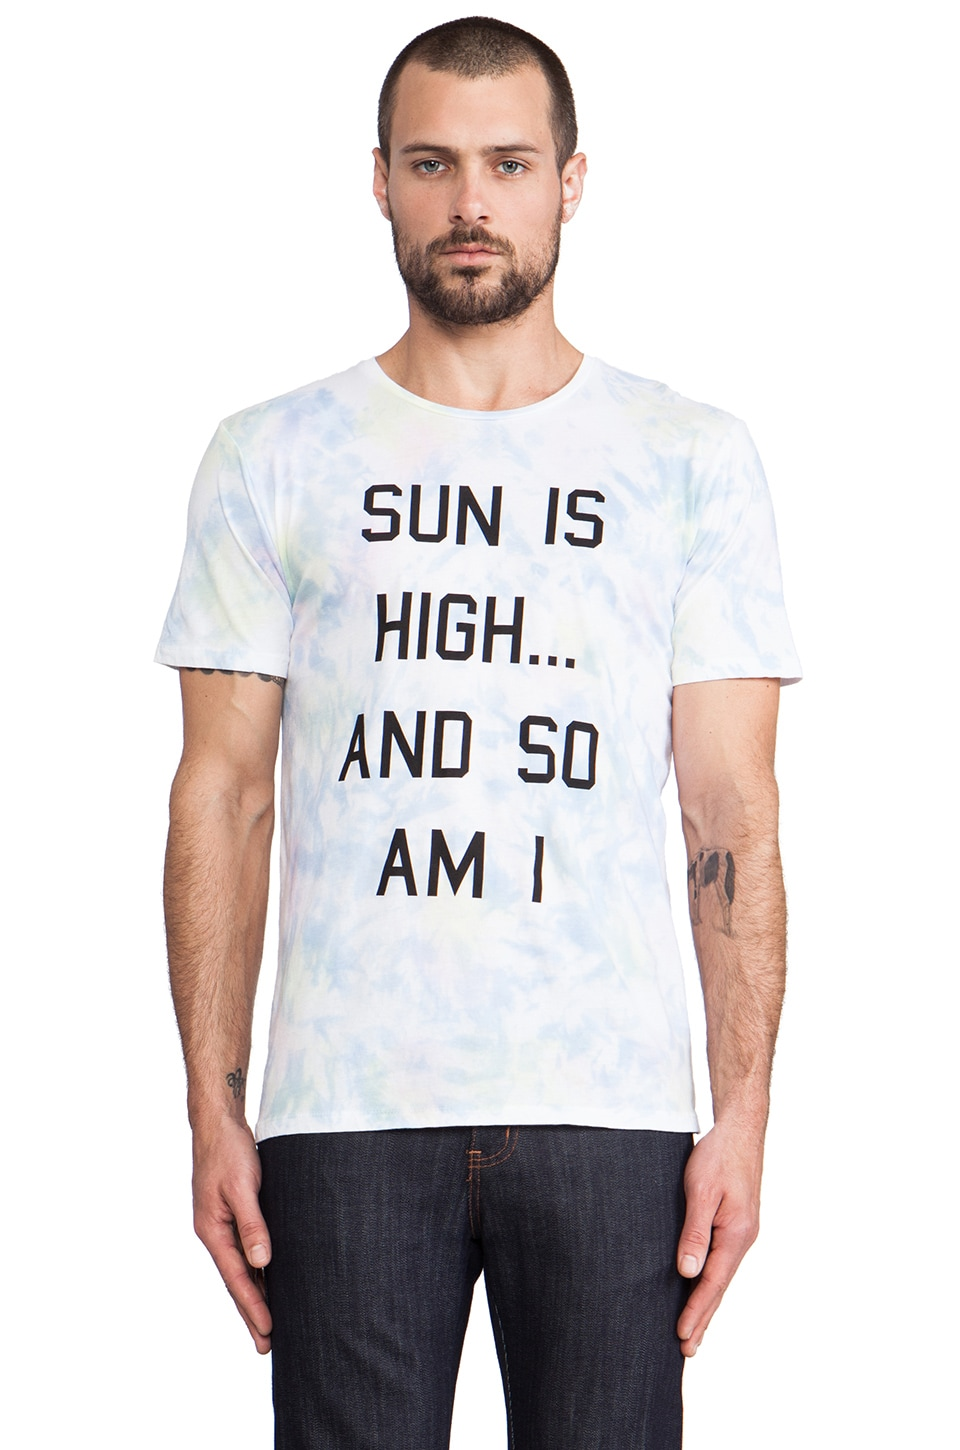 Altru Sun Is High Tee in Tiedye